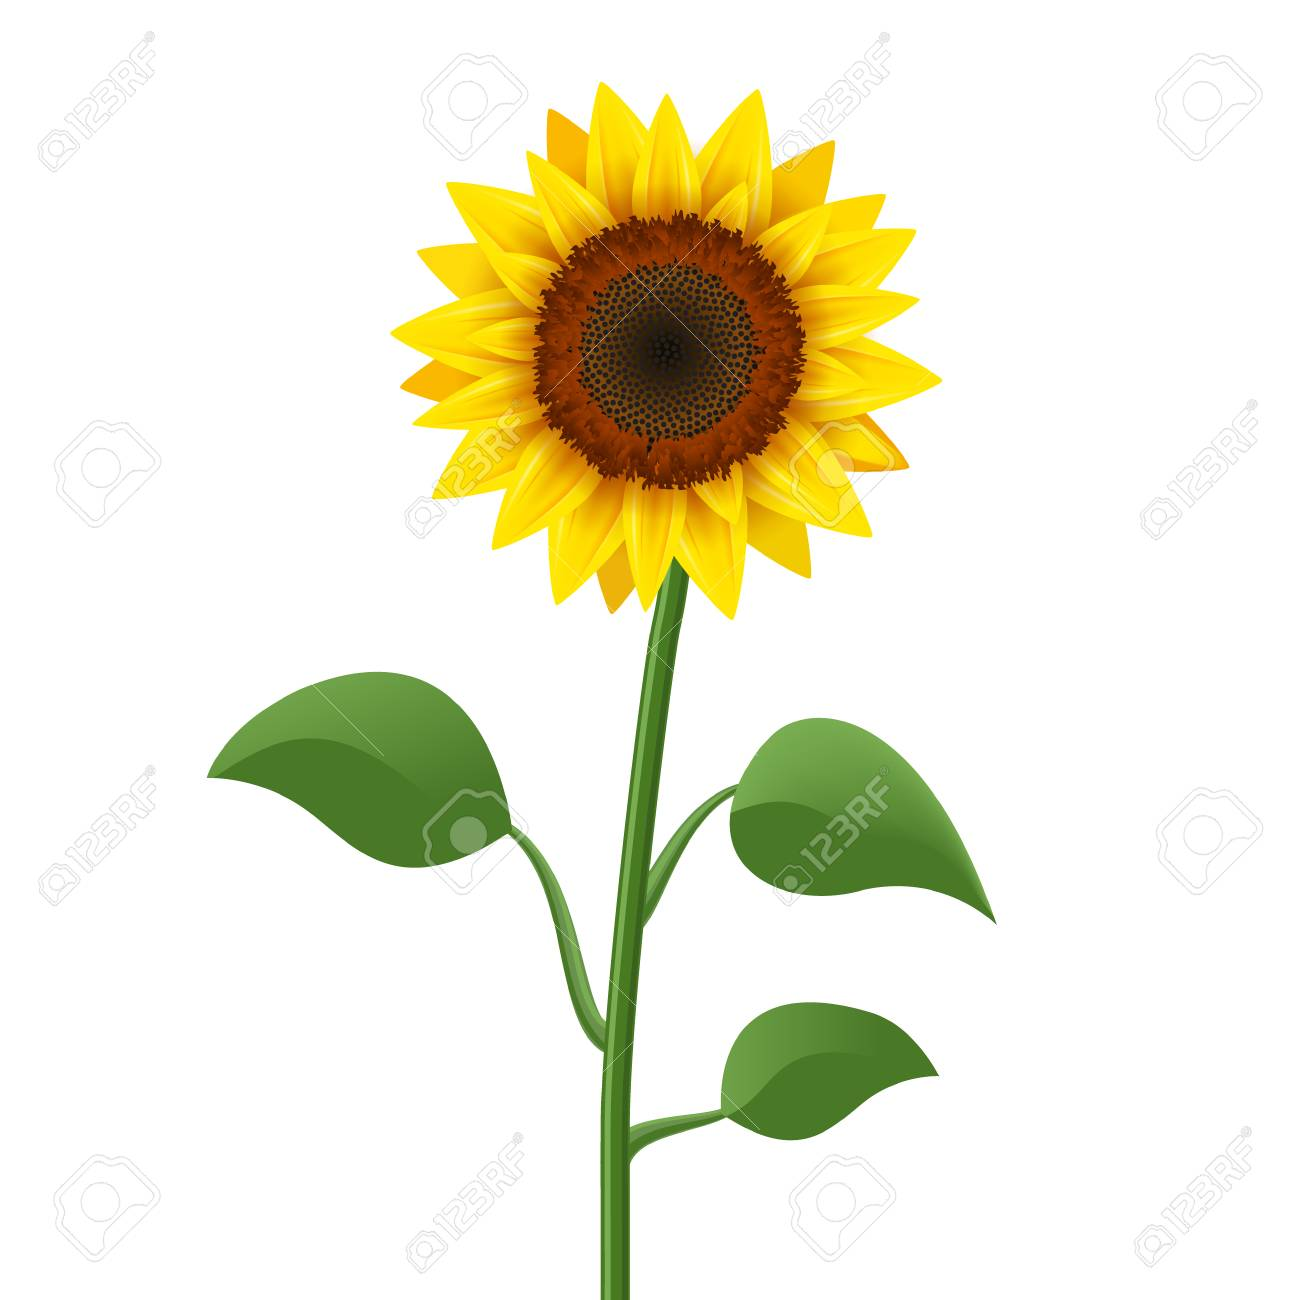 Sunflower Realistic Icon Vector Isolated Yellow Sunflower Blossom Royalty Free Cliparts Vectors And Stock Illustration Image 102589097